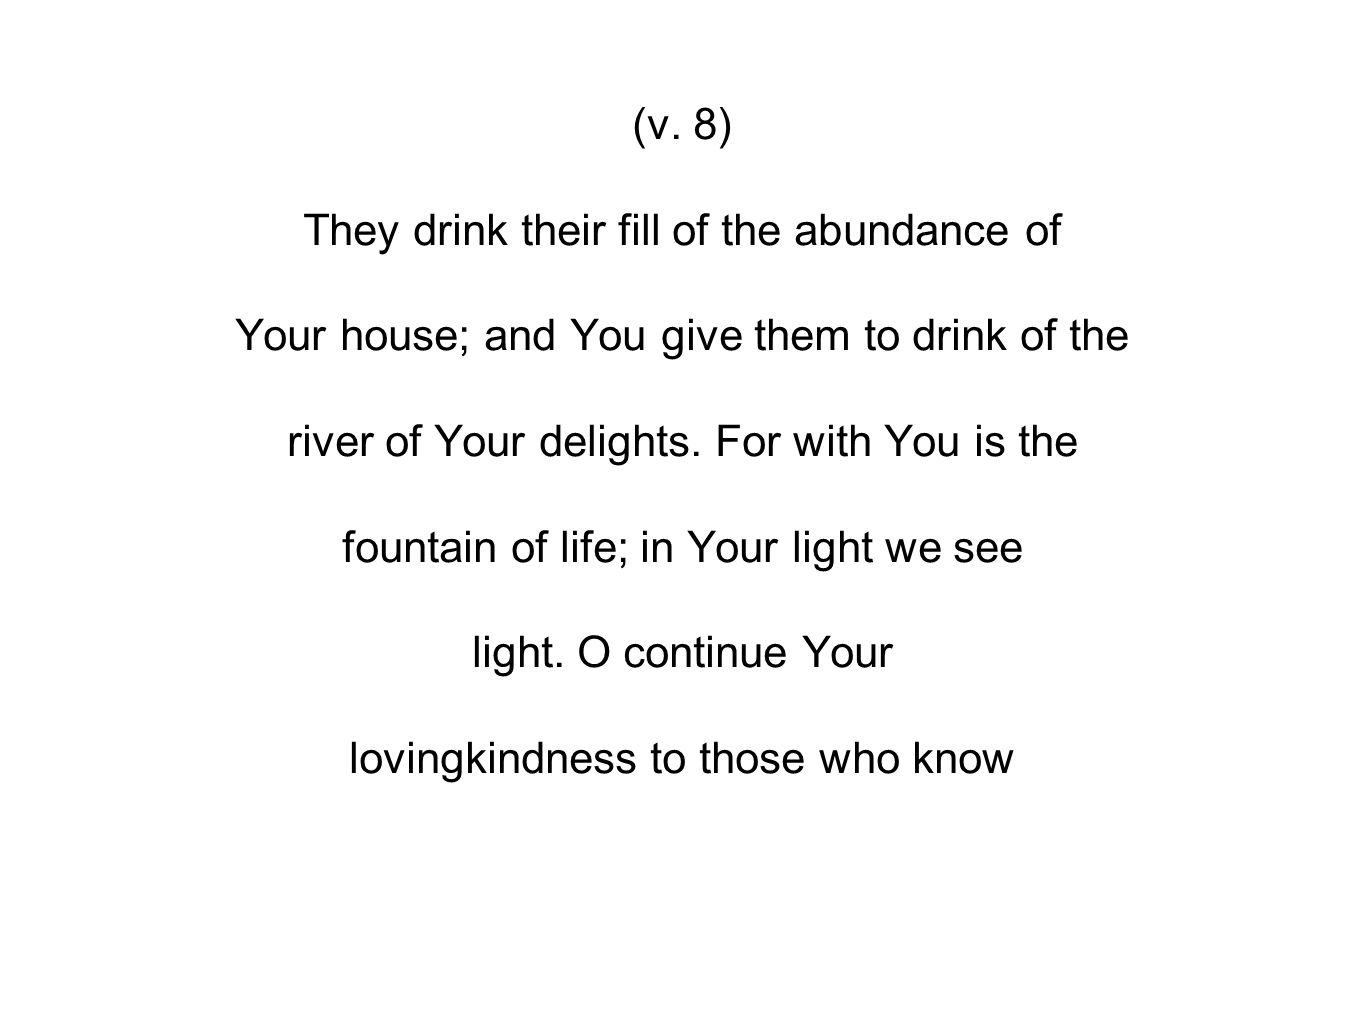 (v. 8) They drink their fill of the abundance of Your house; and You give them to drink of the river of Your delights. For with You is the fountain of